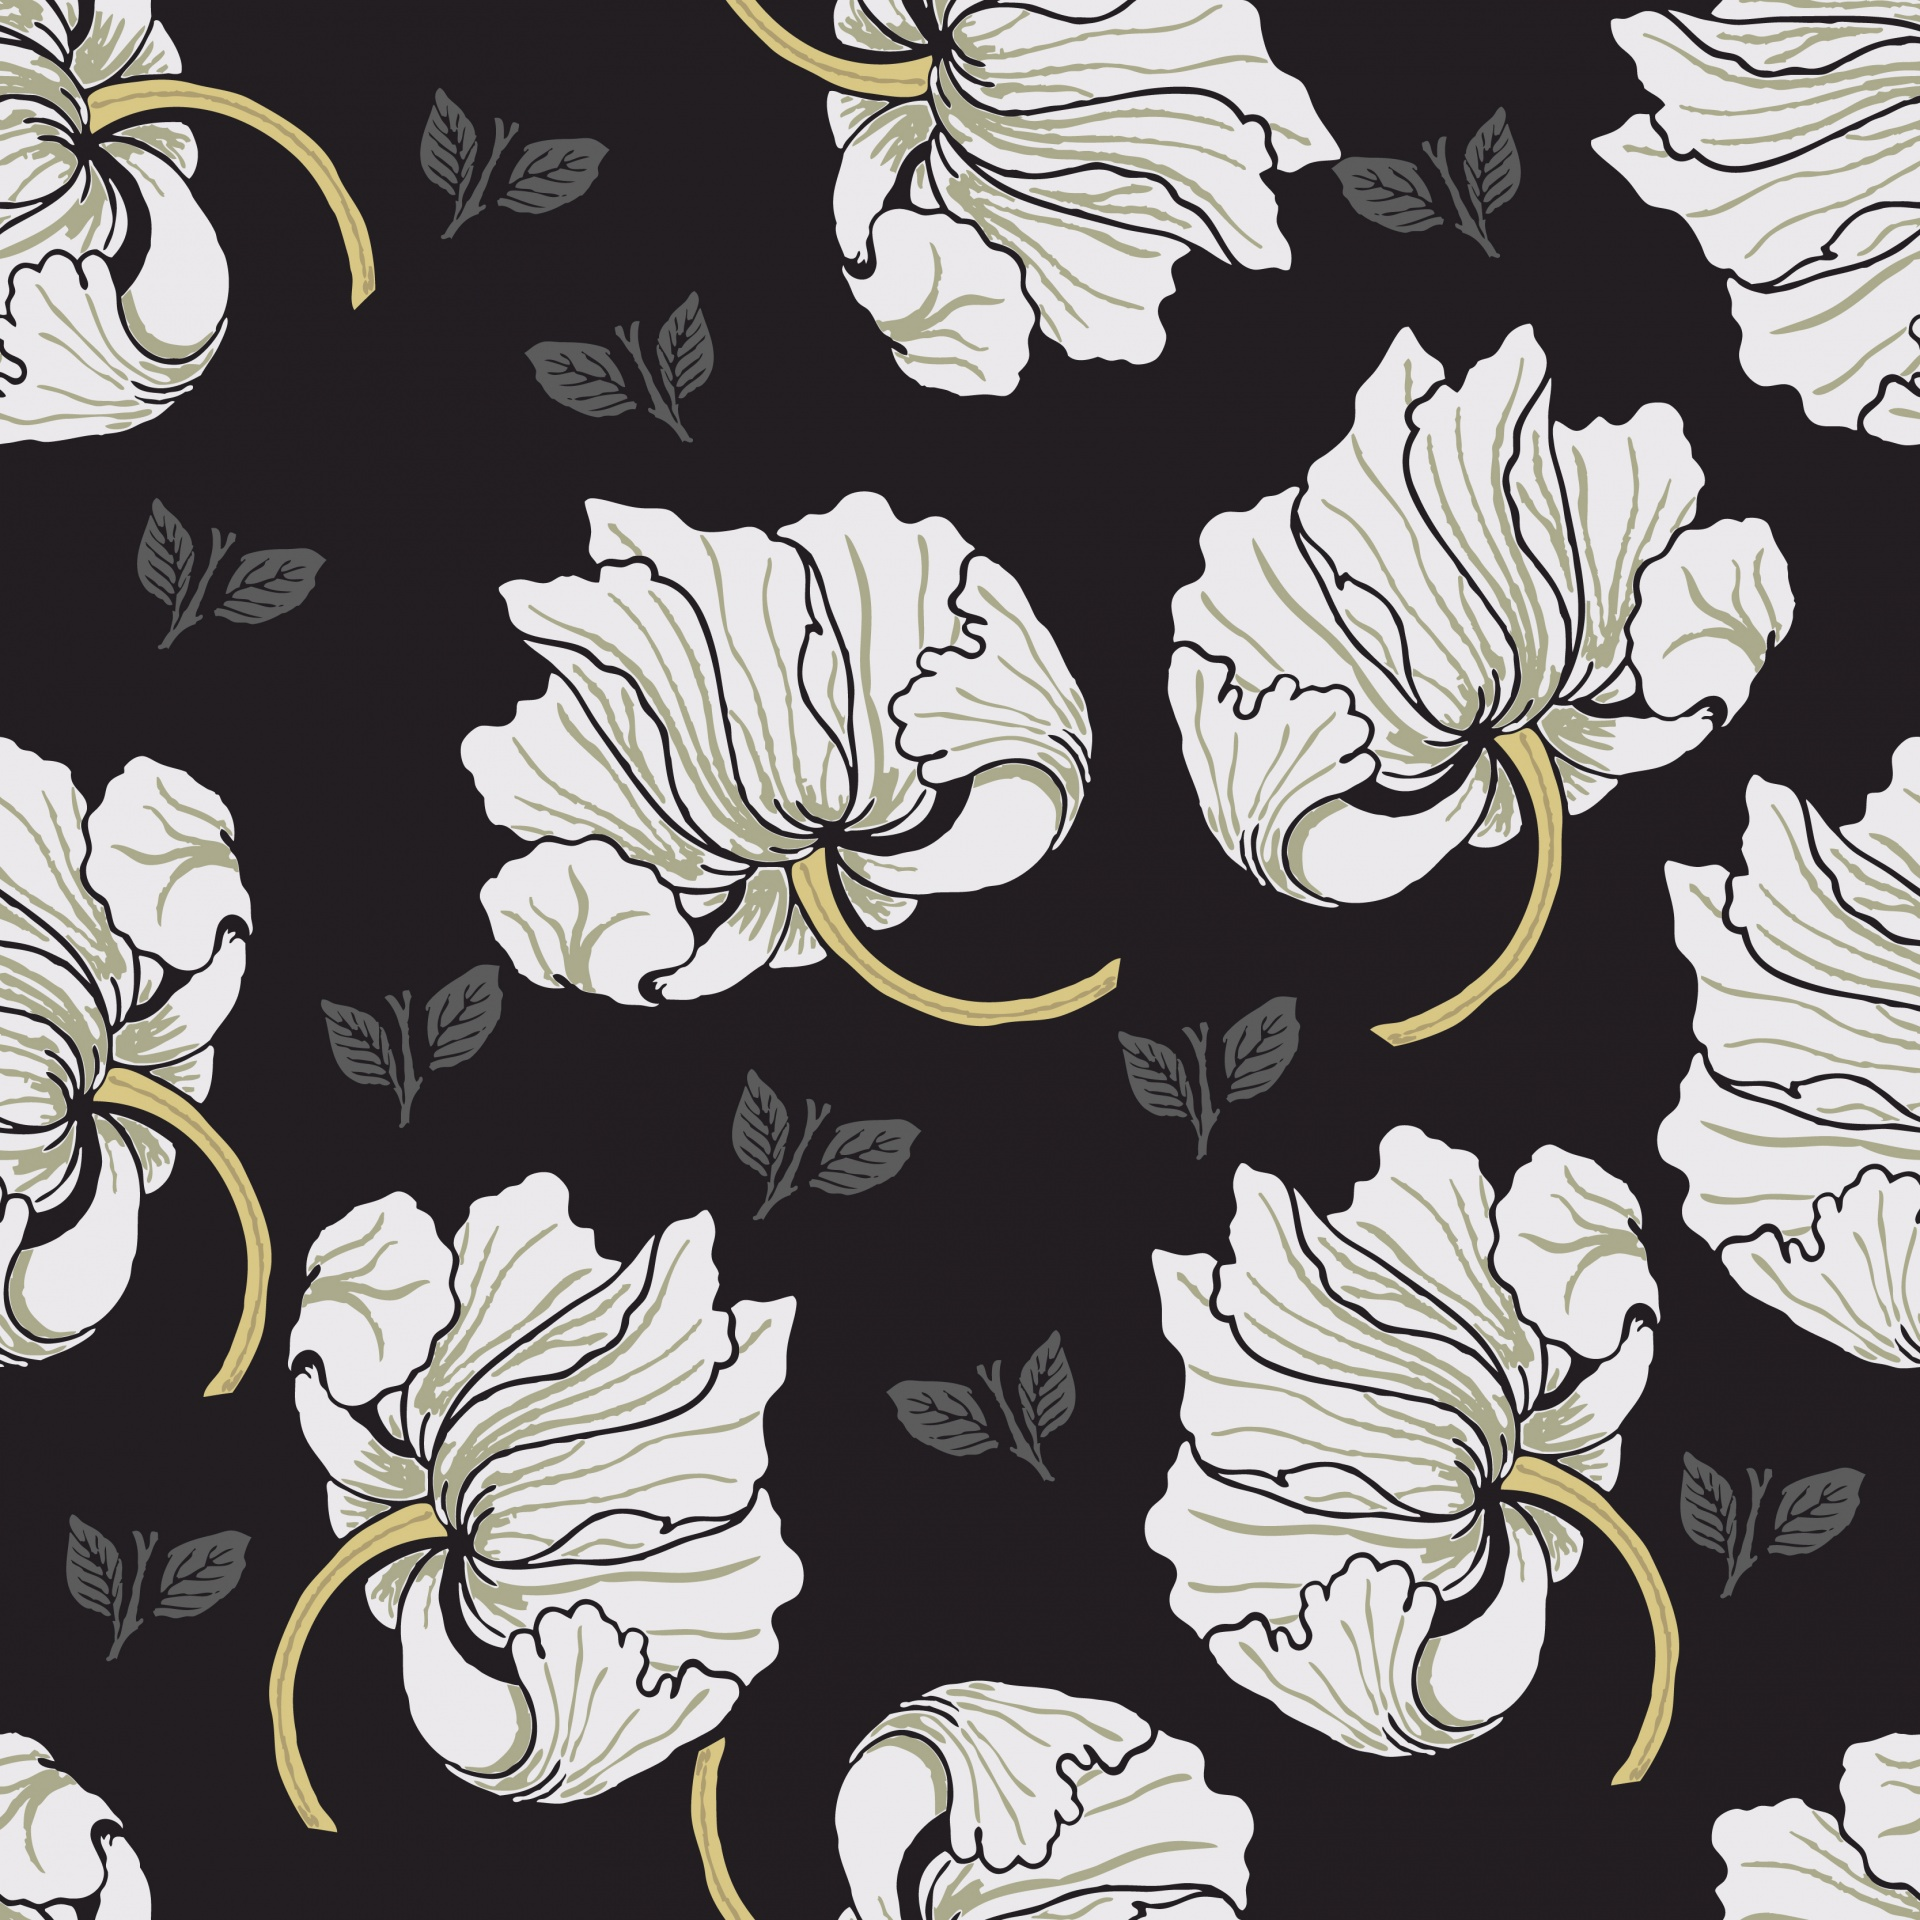 Flowers Floral Wallpaper Background Illustration Free Image From